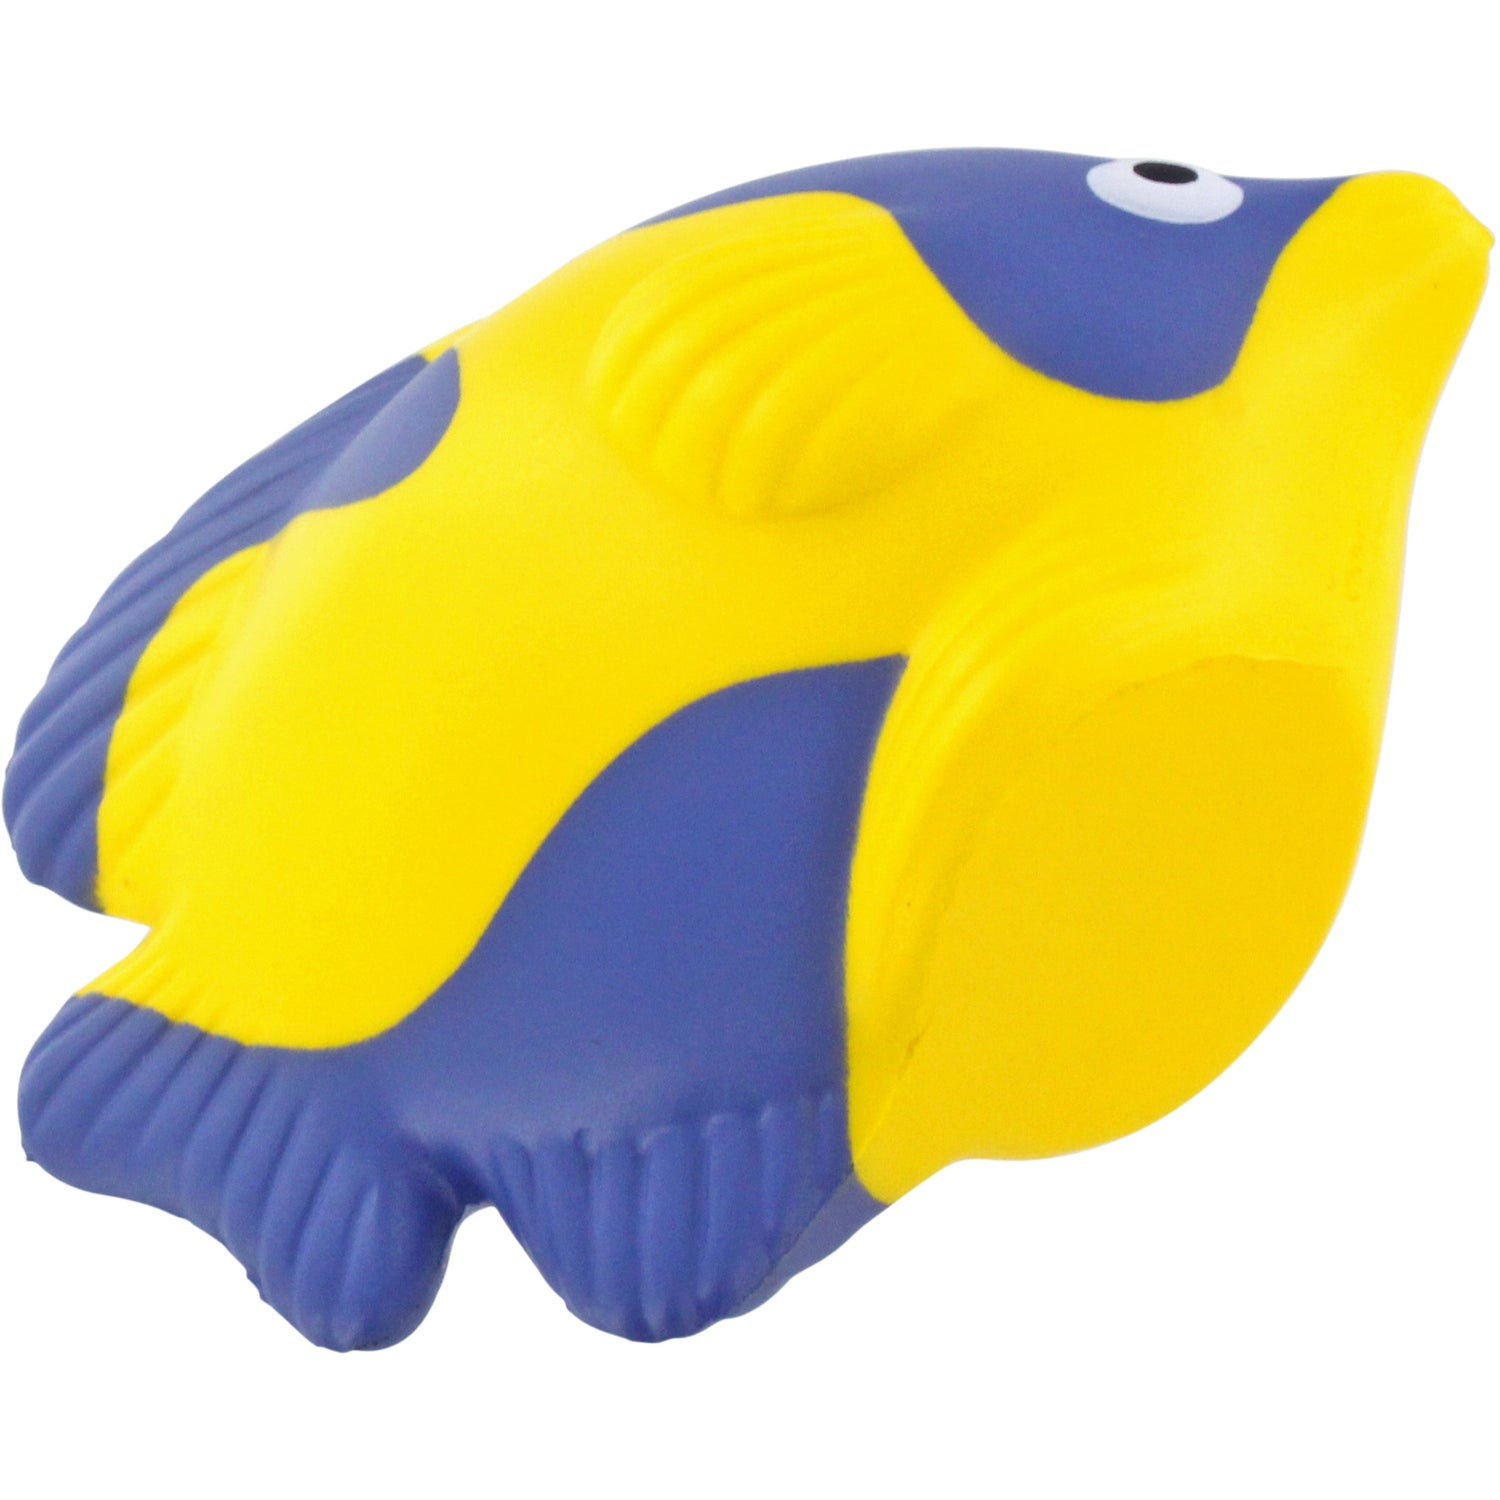 Fish Stress : Tropical Fish Stress Ball Custom Stress Balls 0.97 Ea.